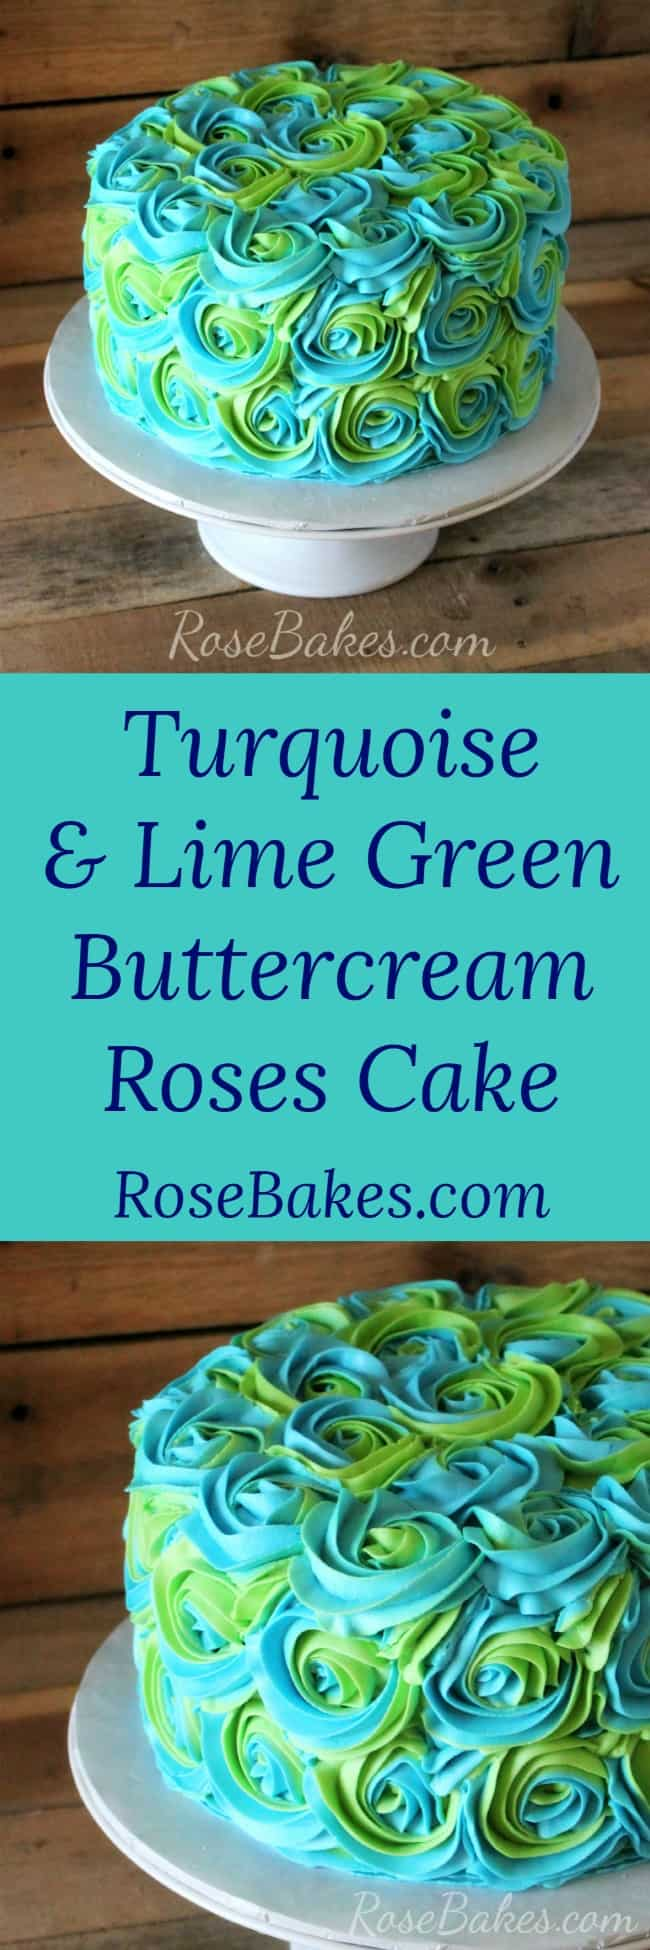 Turquoise & Lime Green Buttercream Roses Cake by Rose Bakes